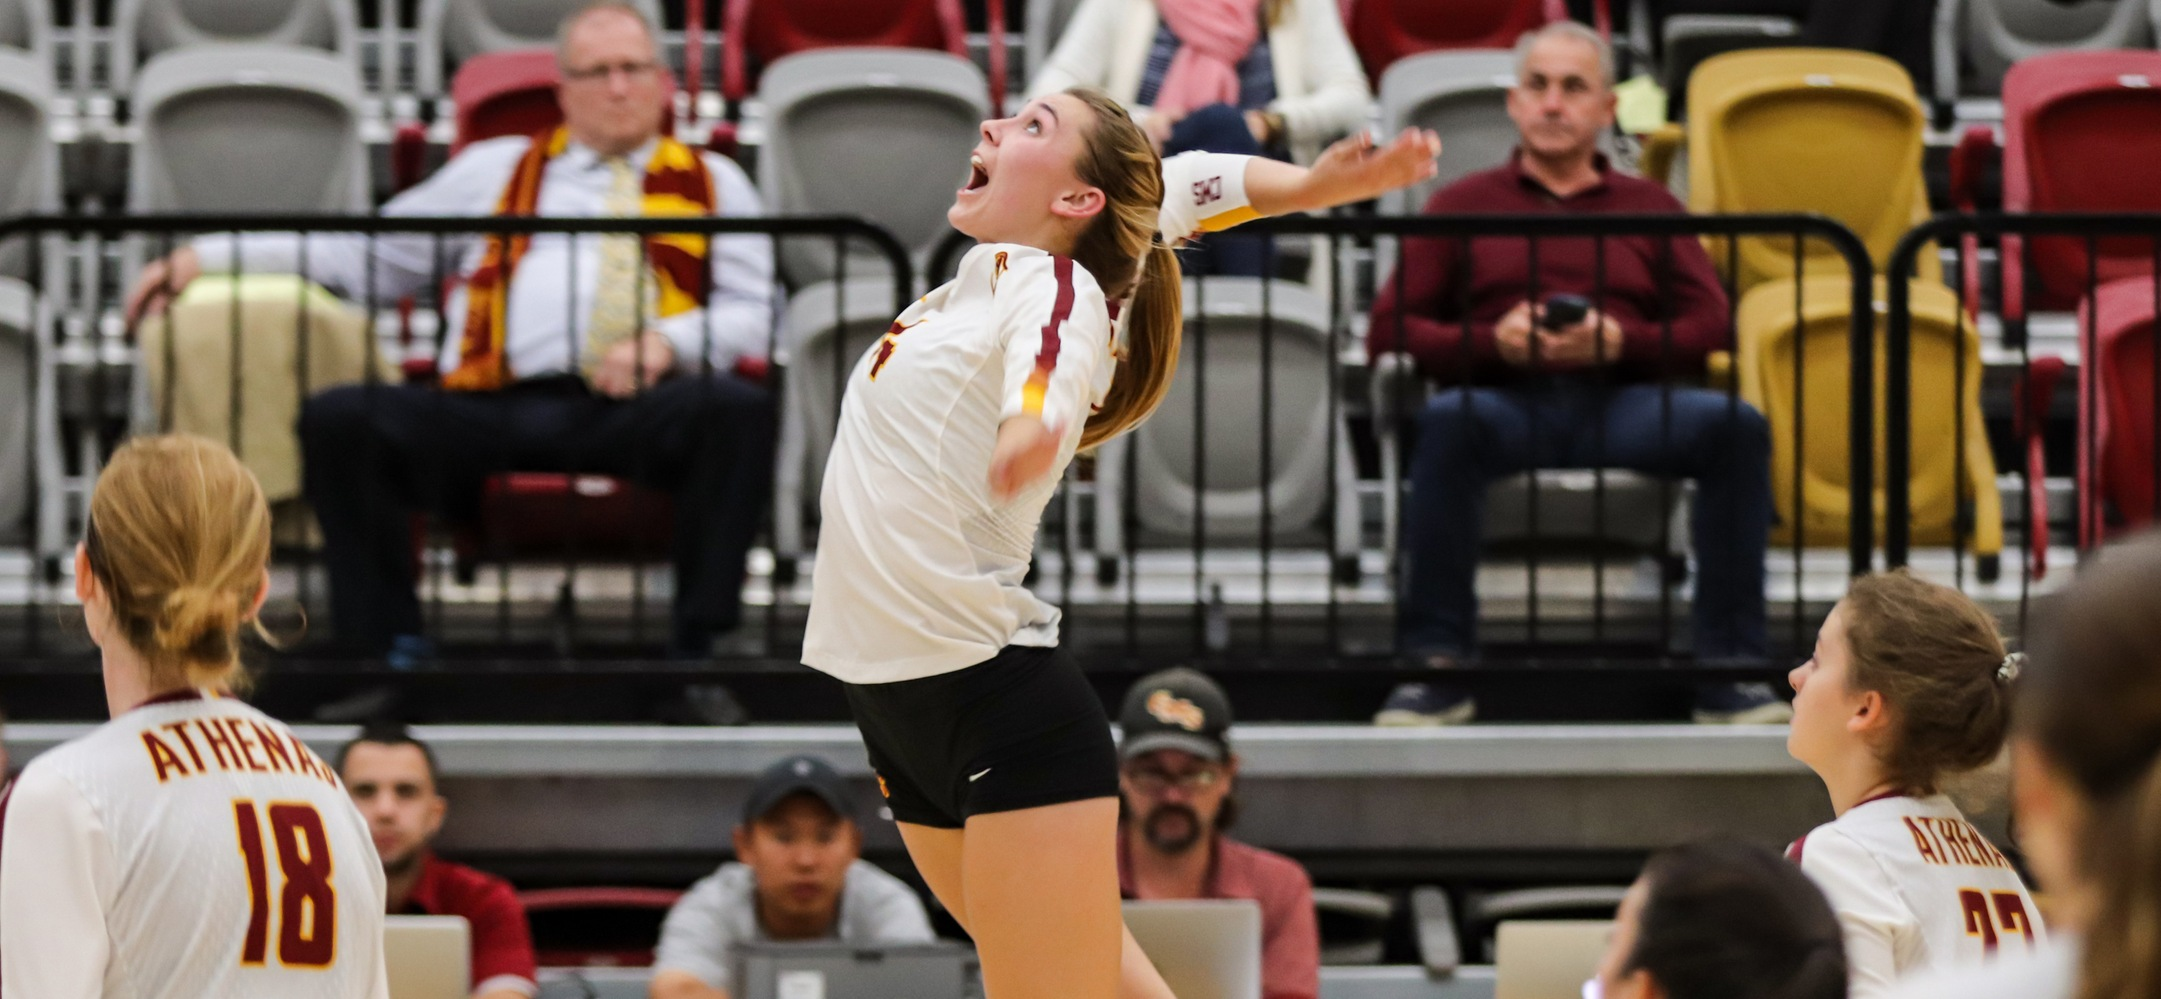 Phoebe Madsen came up one kill sky of a triple-double in a quick 3-0 win over Oxy